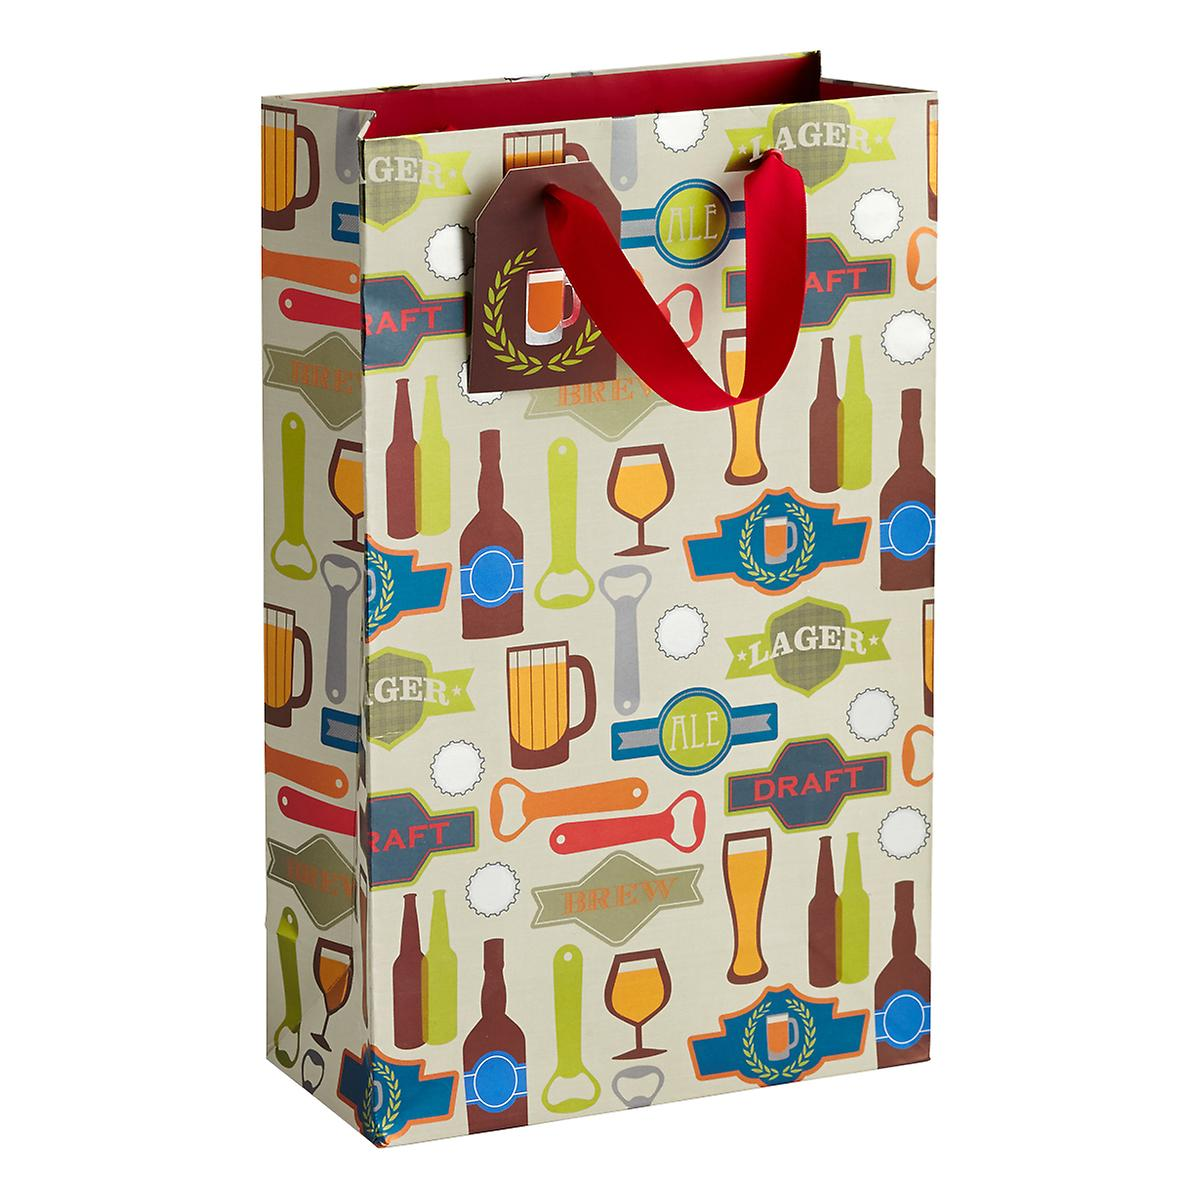 Medium All that Ales You Gift Tote